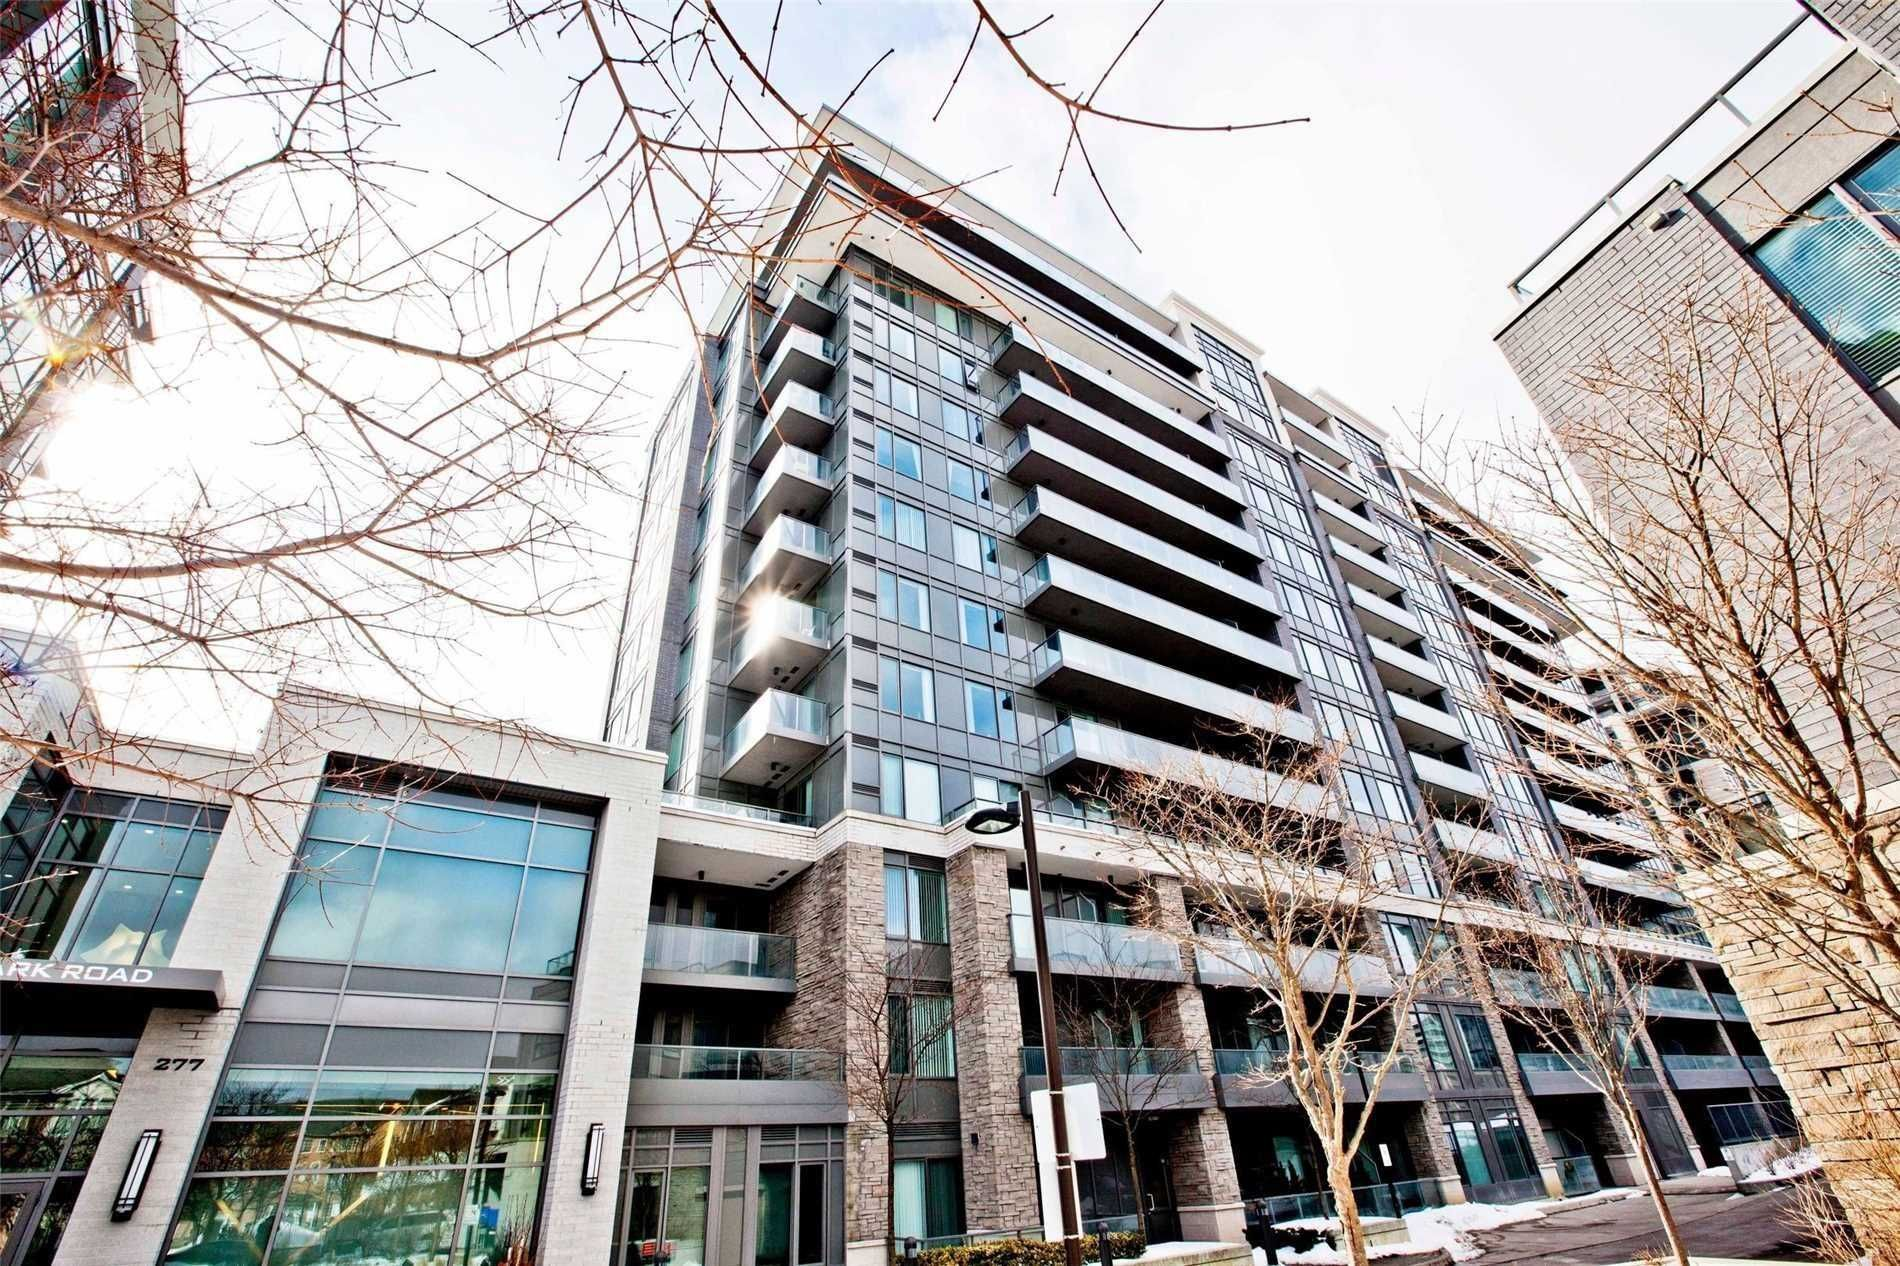 Eden Park II Condos at 277-325 South Park Rd. This condo is located in Thornhill - Markham, Markham